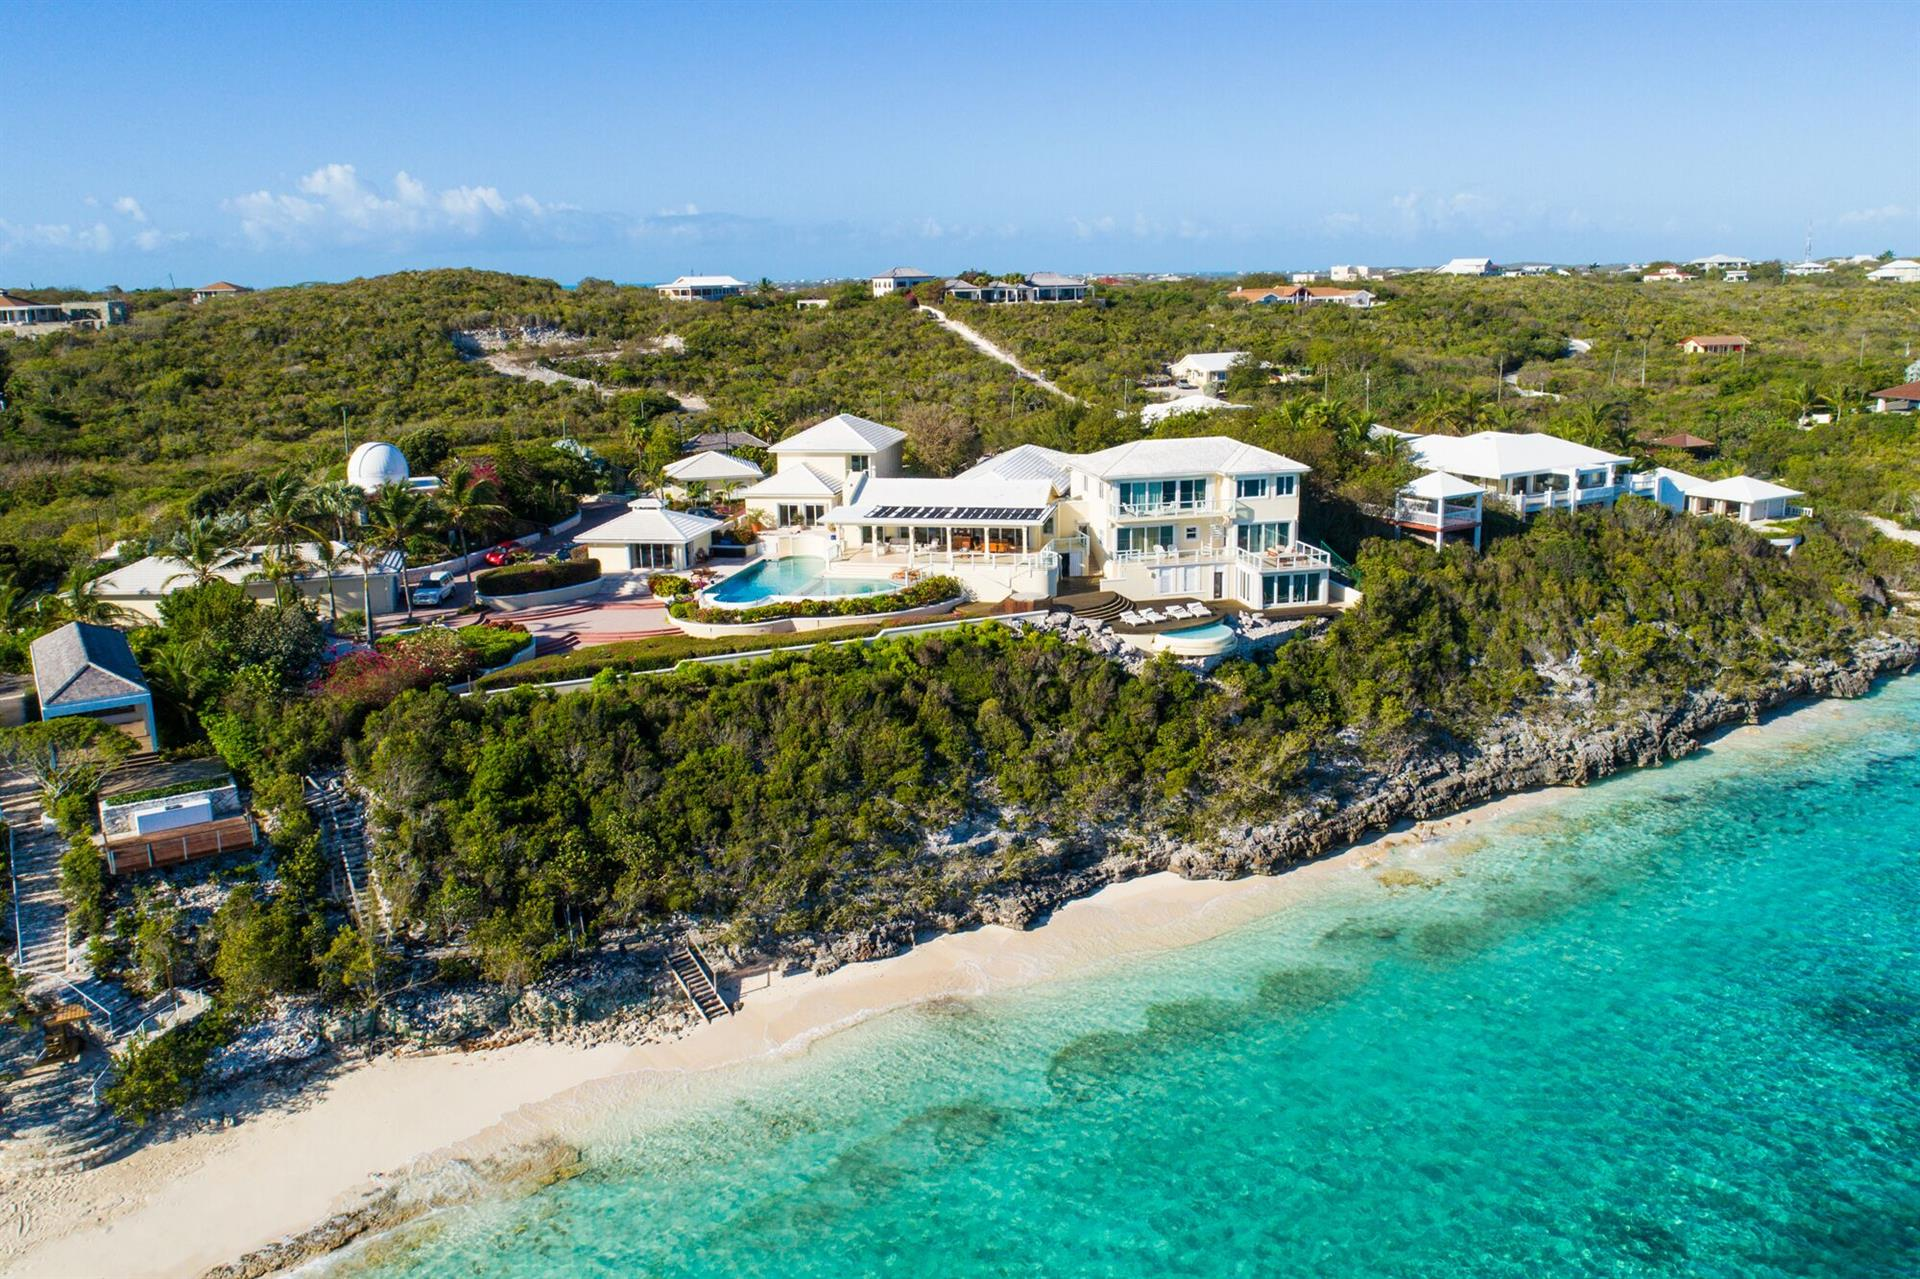 This stunning, skillfully designed property combines light, space, and spectacular ocean views to create an environment like no other, from the white-sand beach to the pond stocked with turtles to the private observatory (the only one on the archipelago).